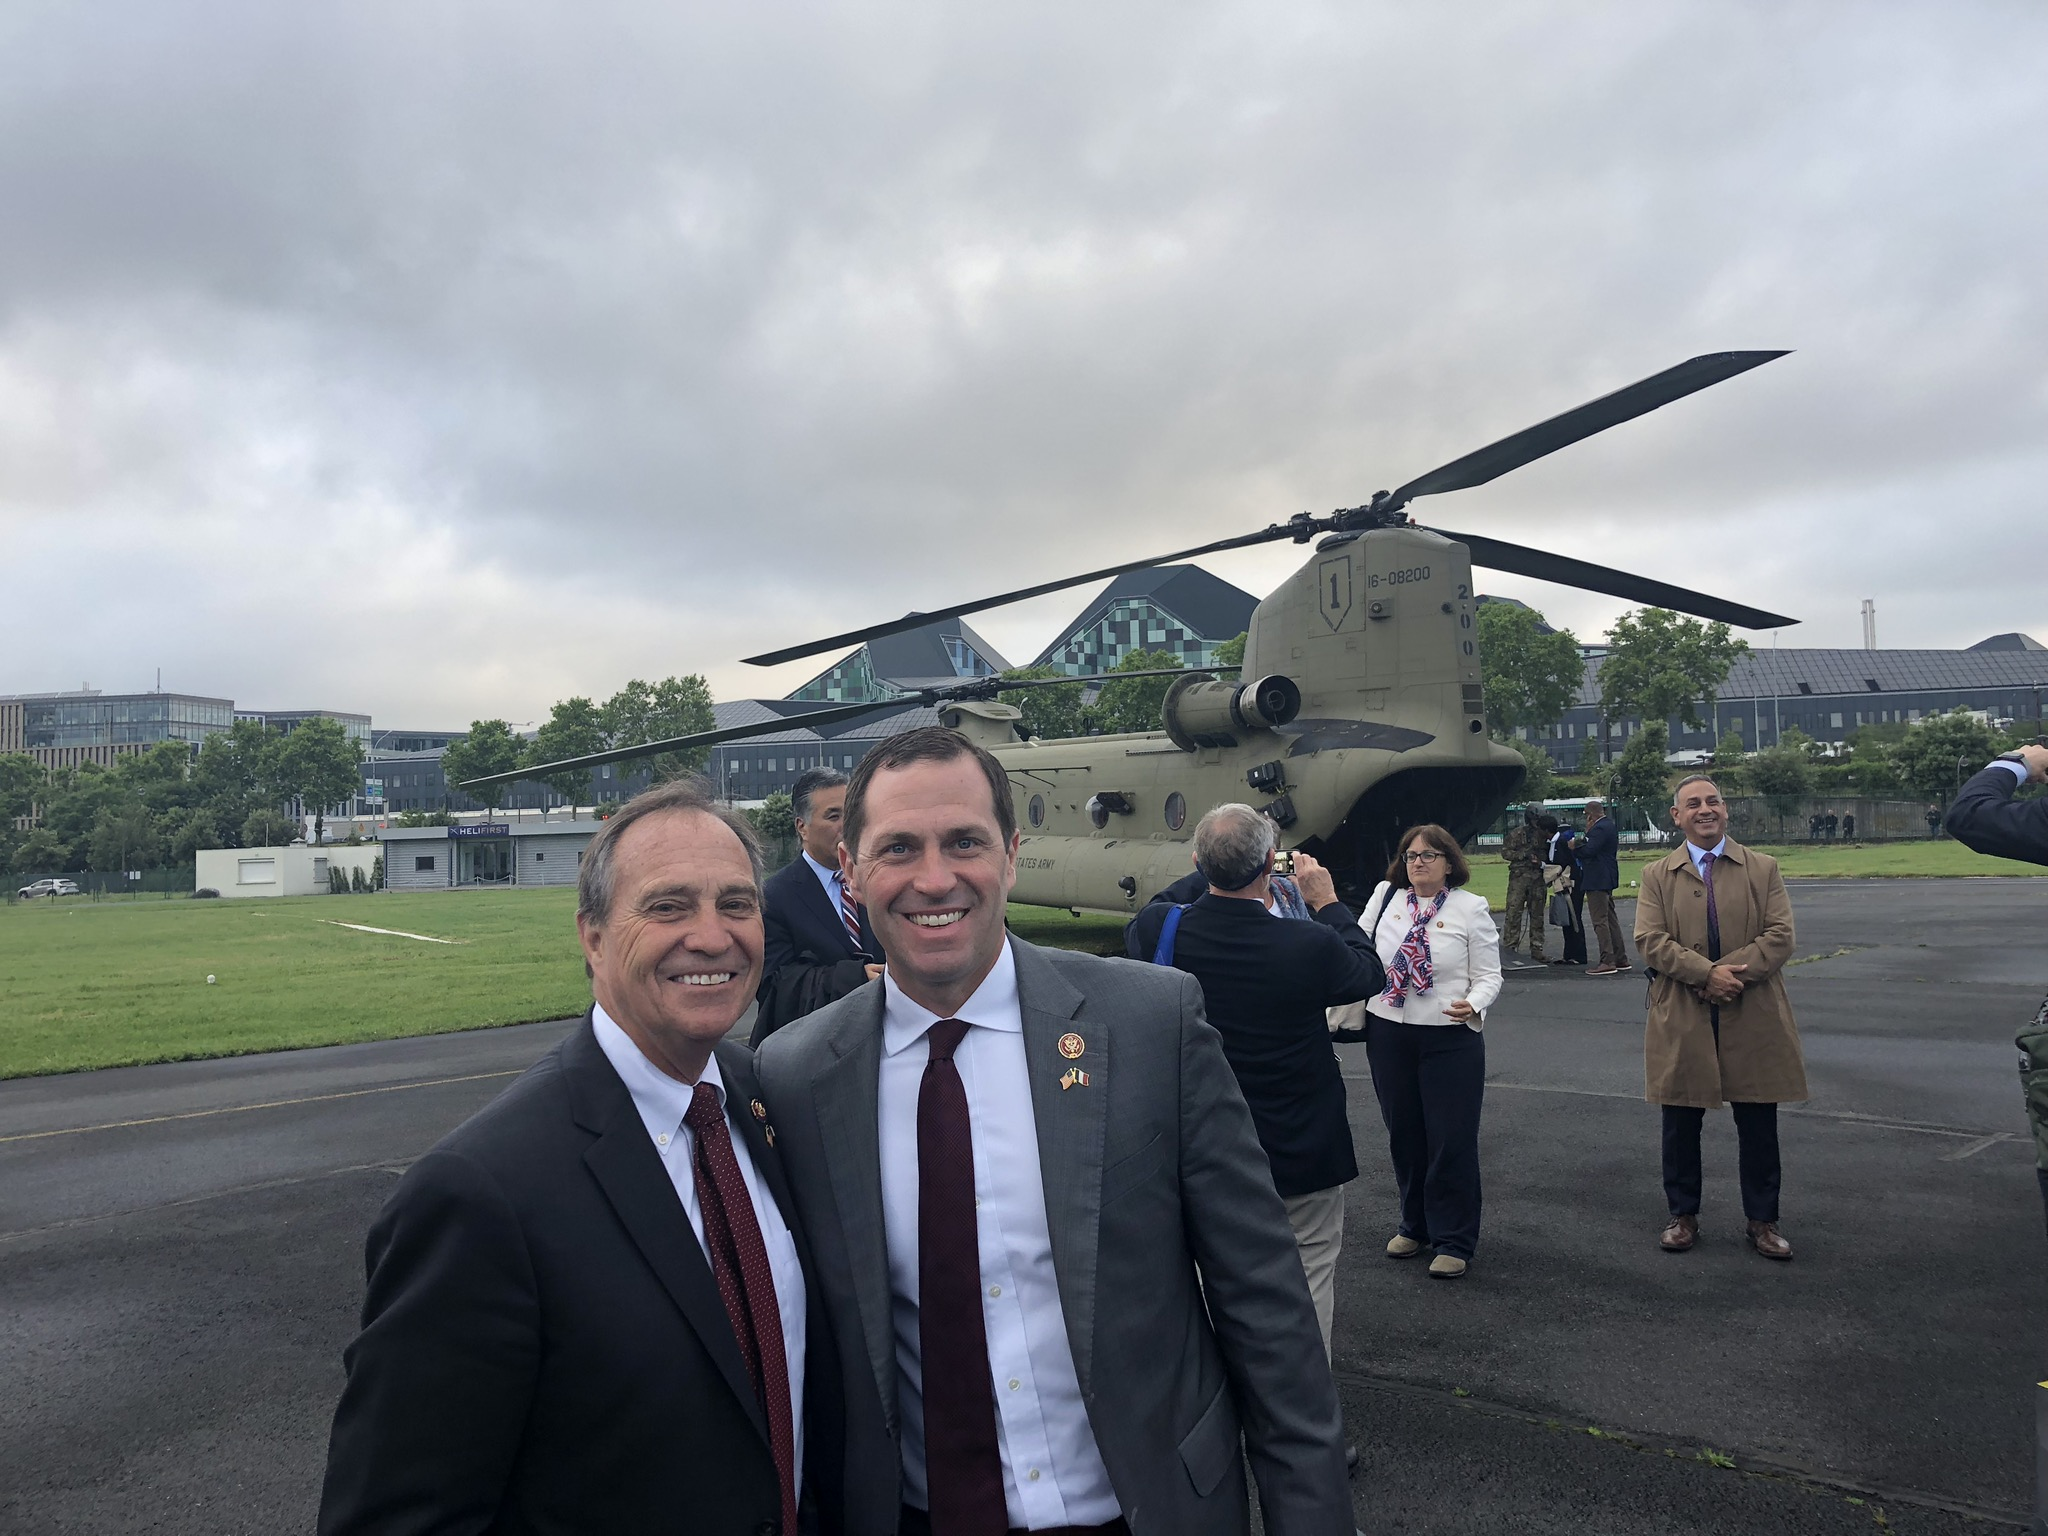 <p>Democratic Congressmen Ed Perlmutter and Jason Crow in Normandy, France, for the 75th anniversary of the D-Day Invasion.</p>